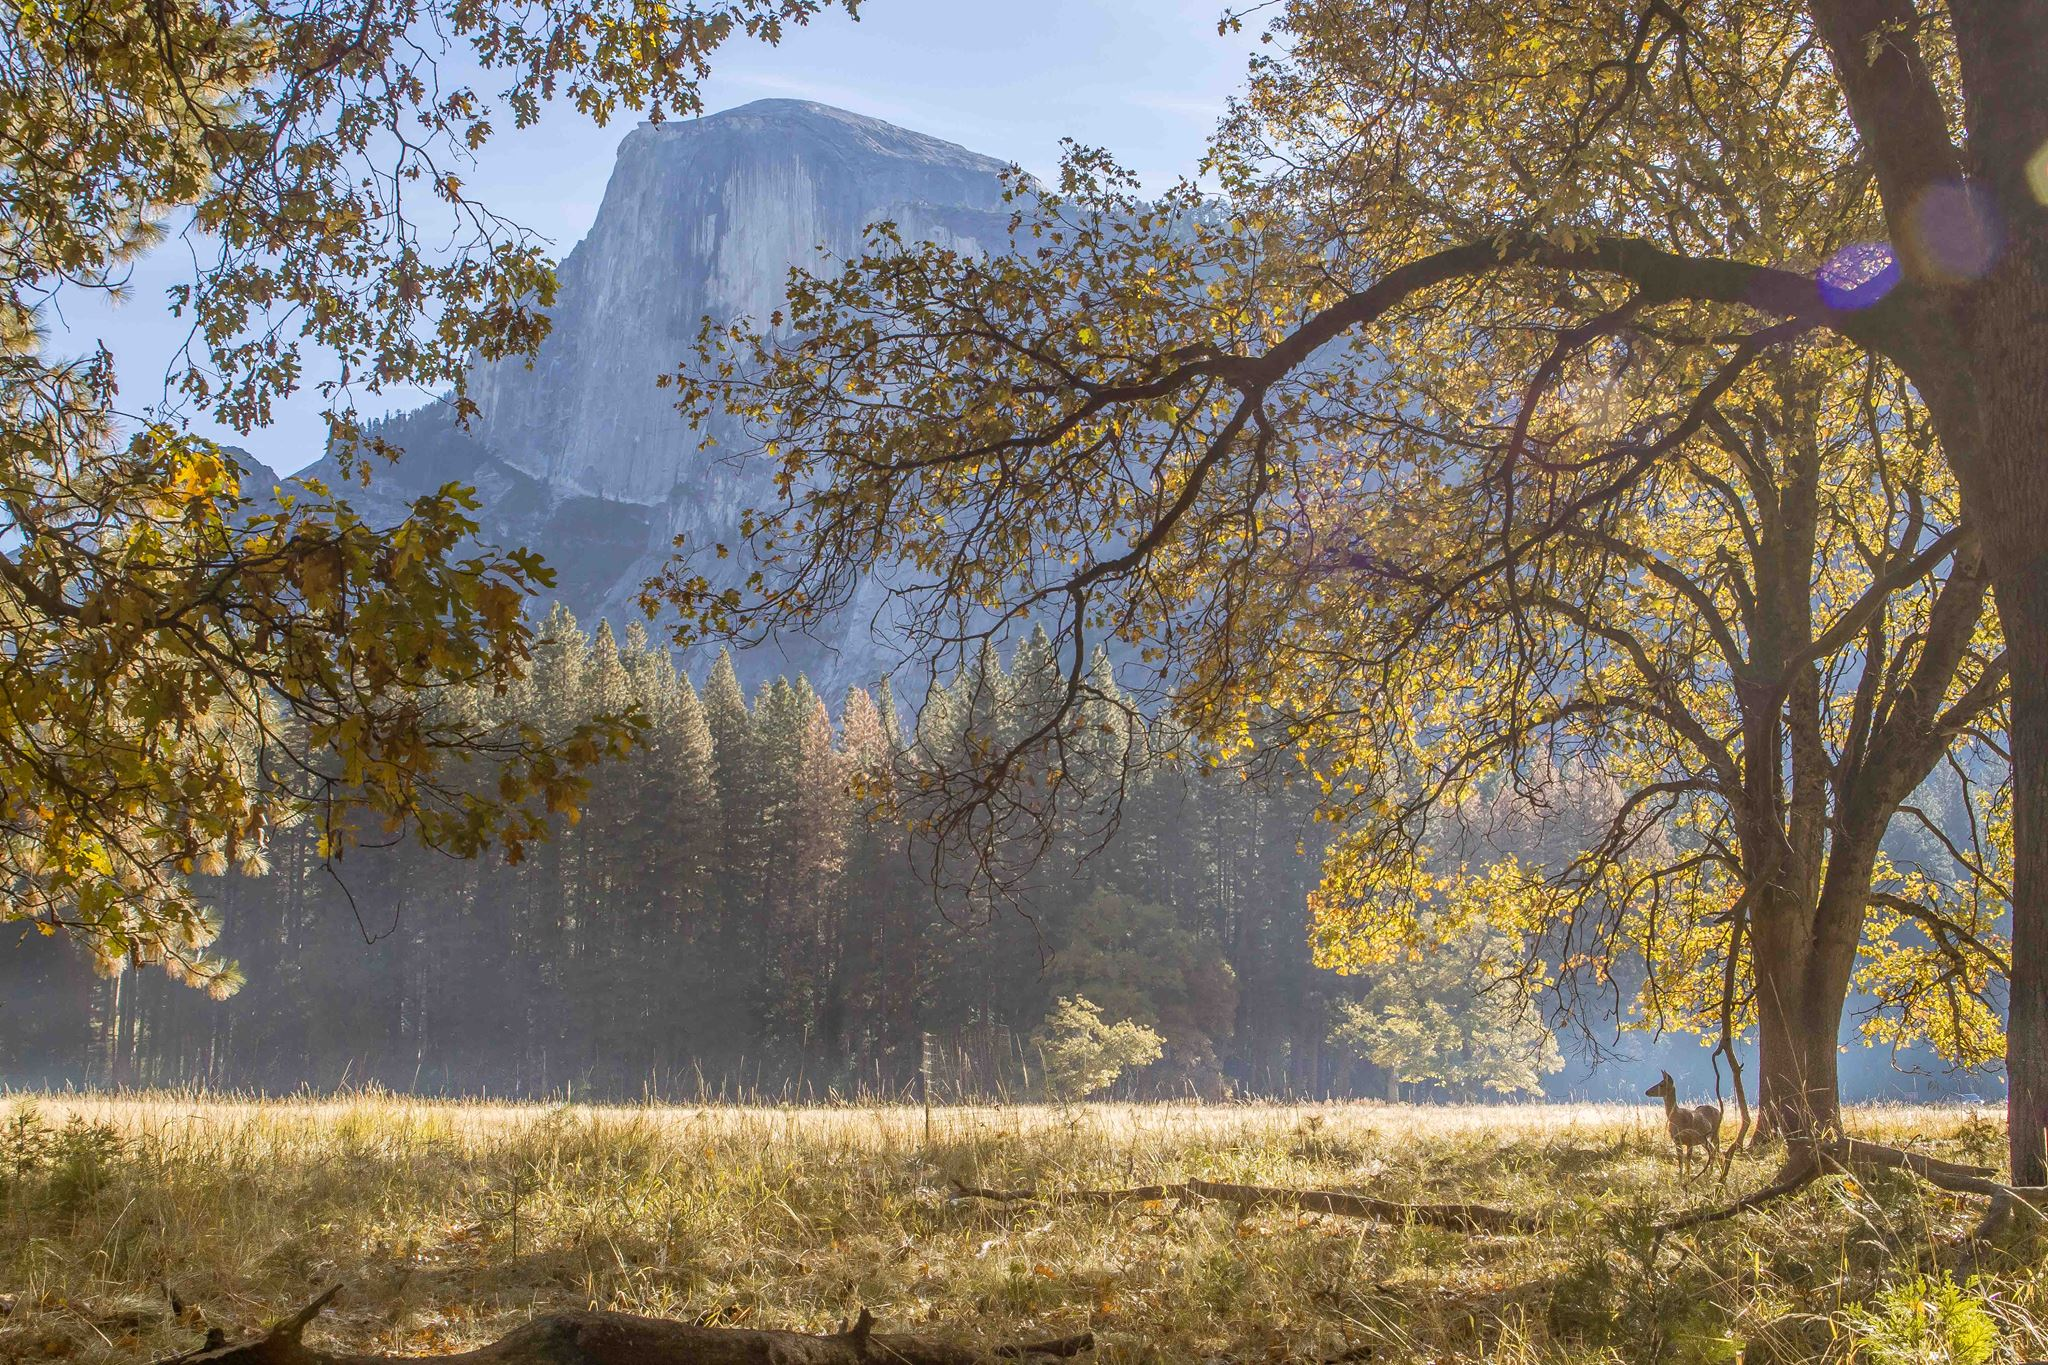 yosemite-fall-deer-kim-lawson.jpg